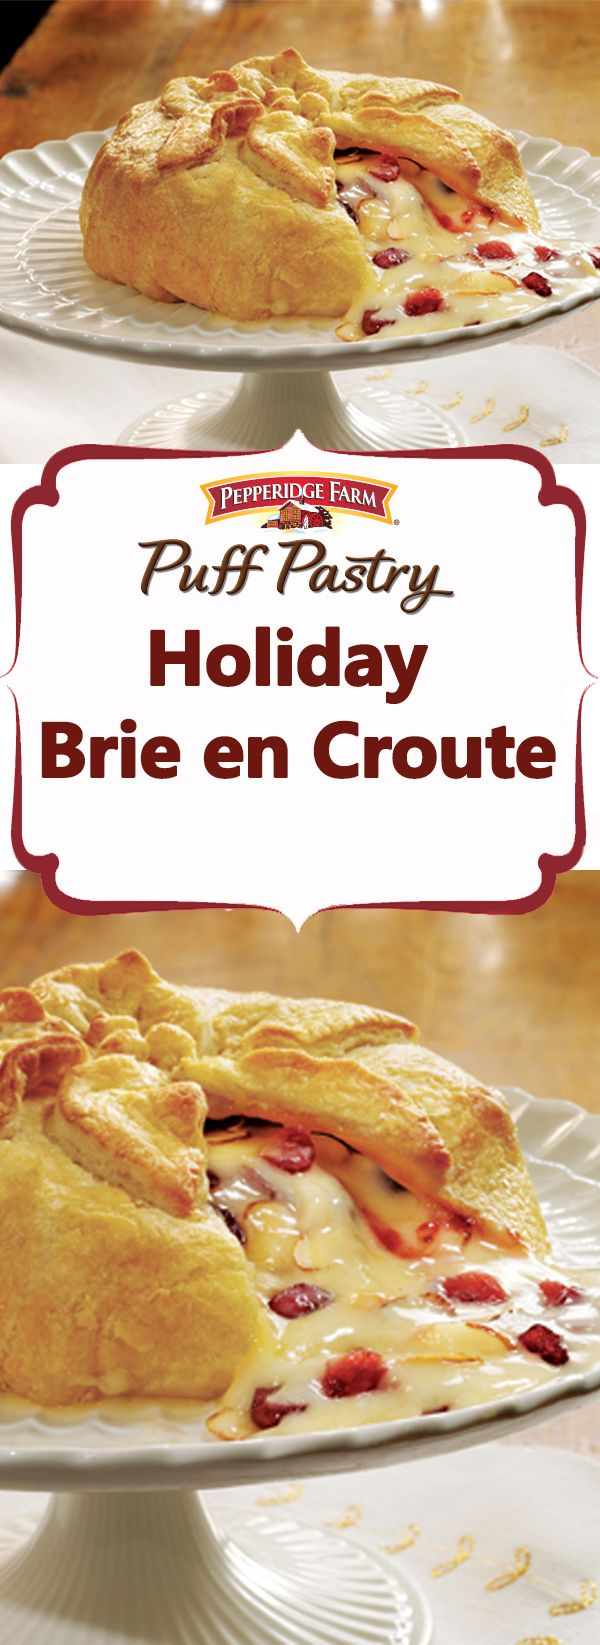 Pepperidge Farm Puff Pastry Holiday Brie en Croute Recipe. This Puff Pastry-wrapped soft cheese, topped with cranberries, apricots and almonds, is an all-time holiday favorite appetizer. It's so good, you'll want to serve it at every gathering